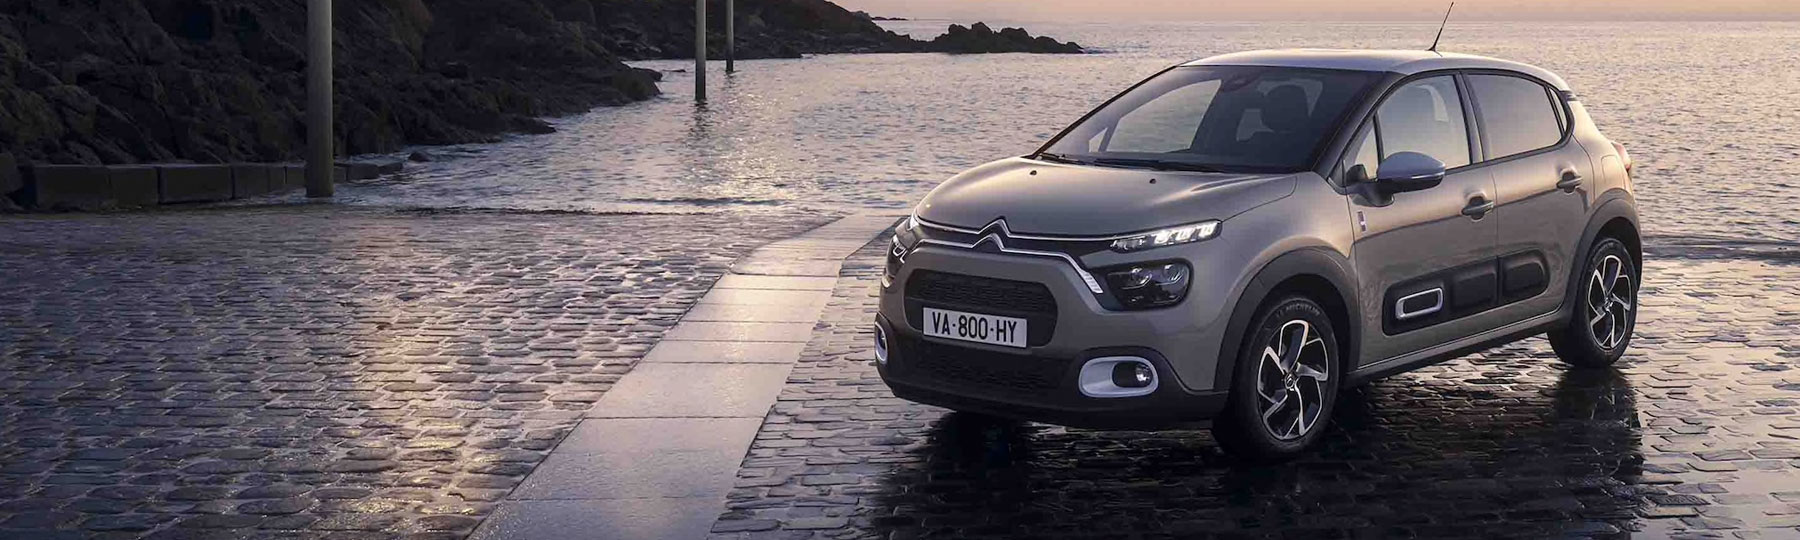 New CITROËN C3 82 manual - Feel